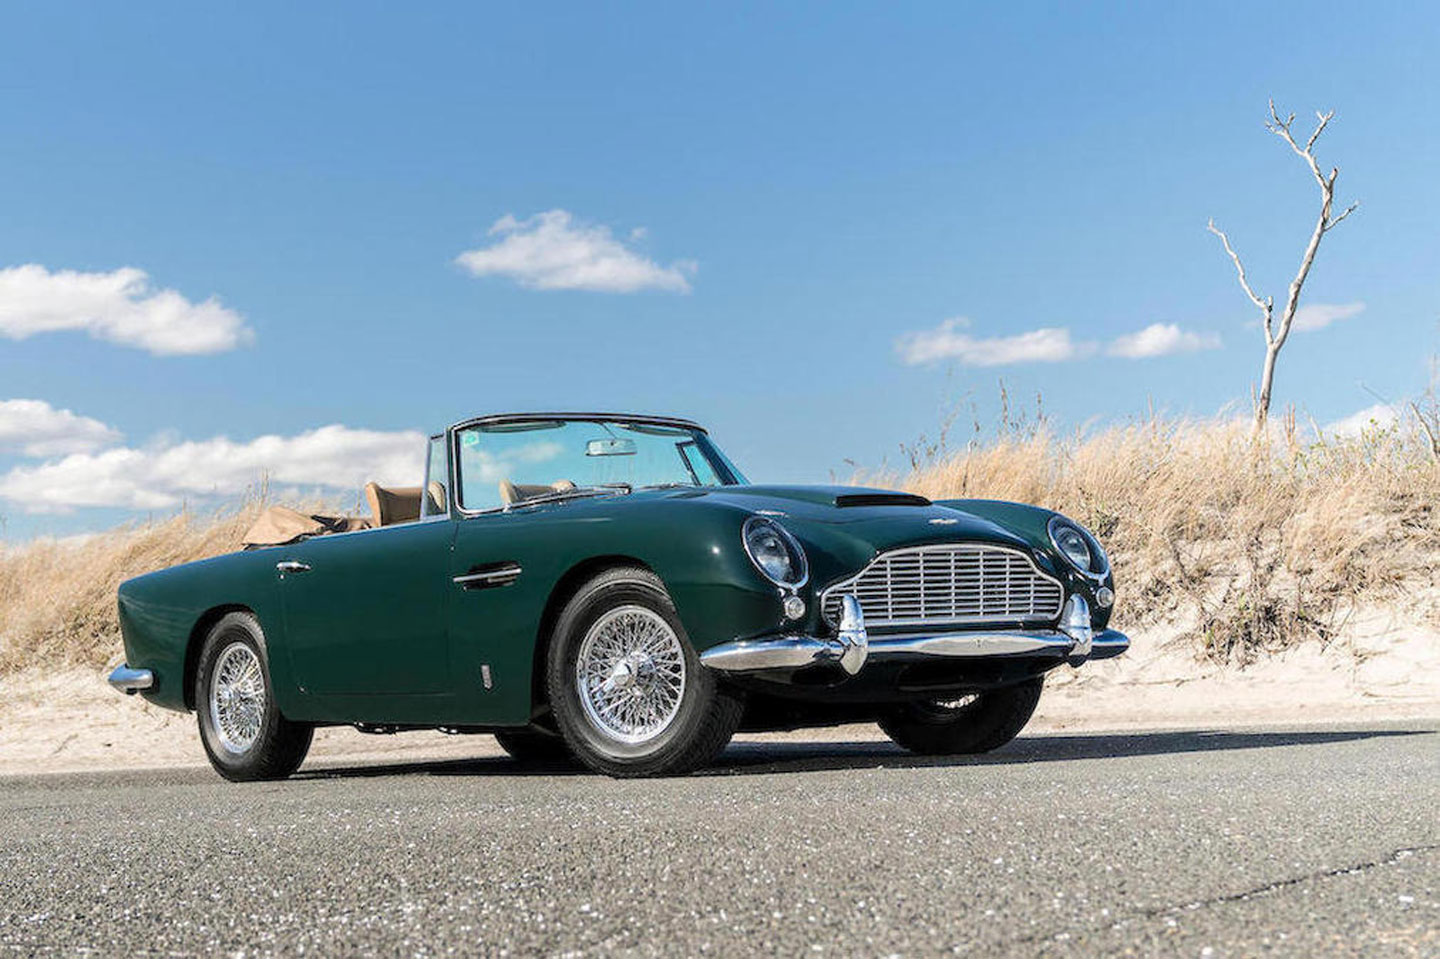 Top 3 Car Selling Sites To Sell Your Classic Car To International Buyers